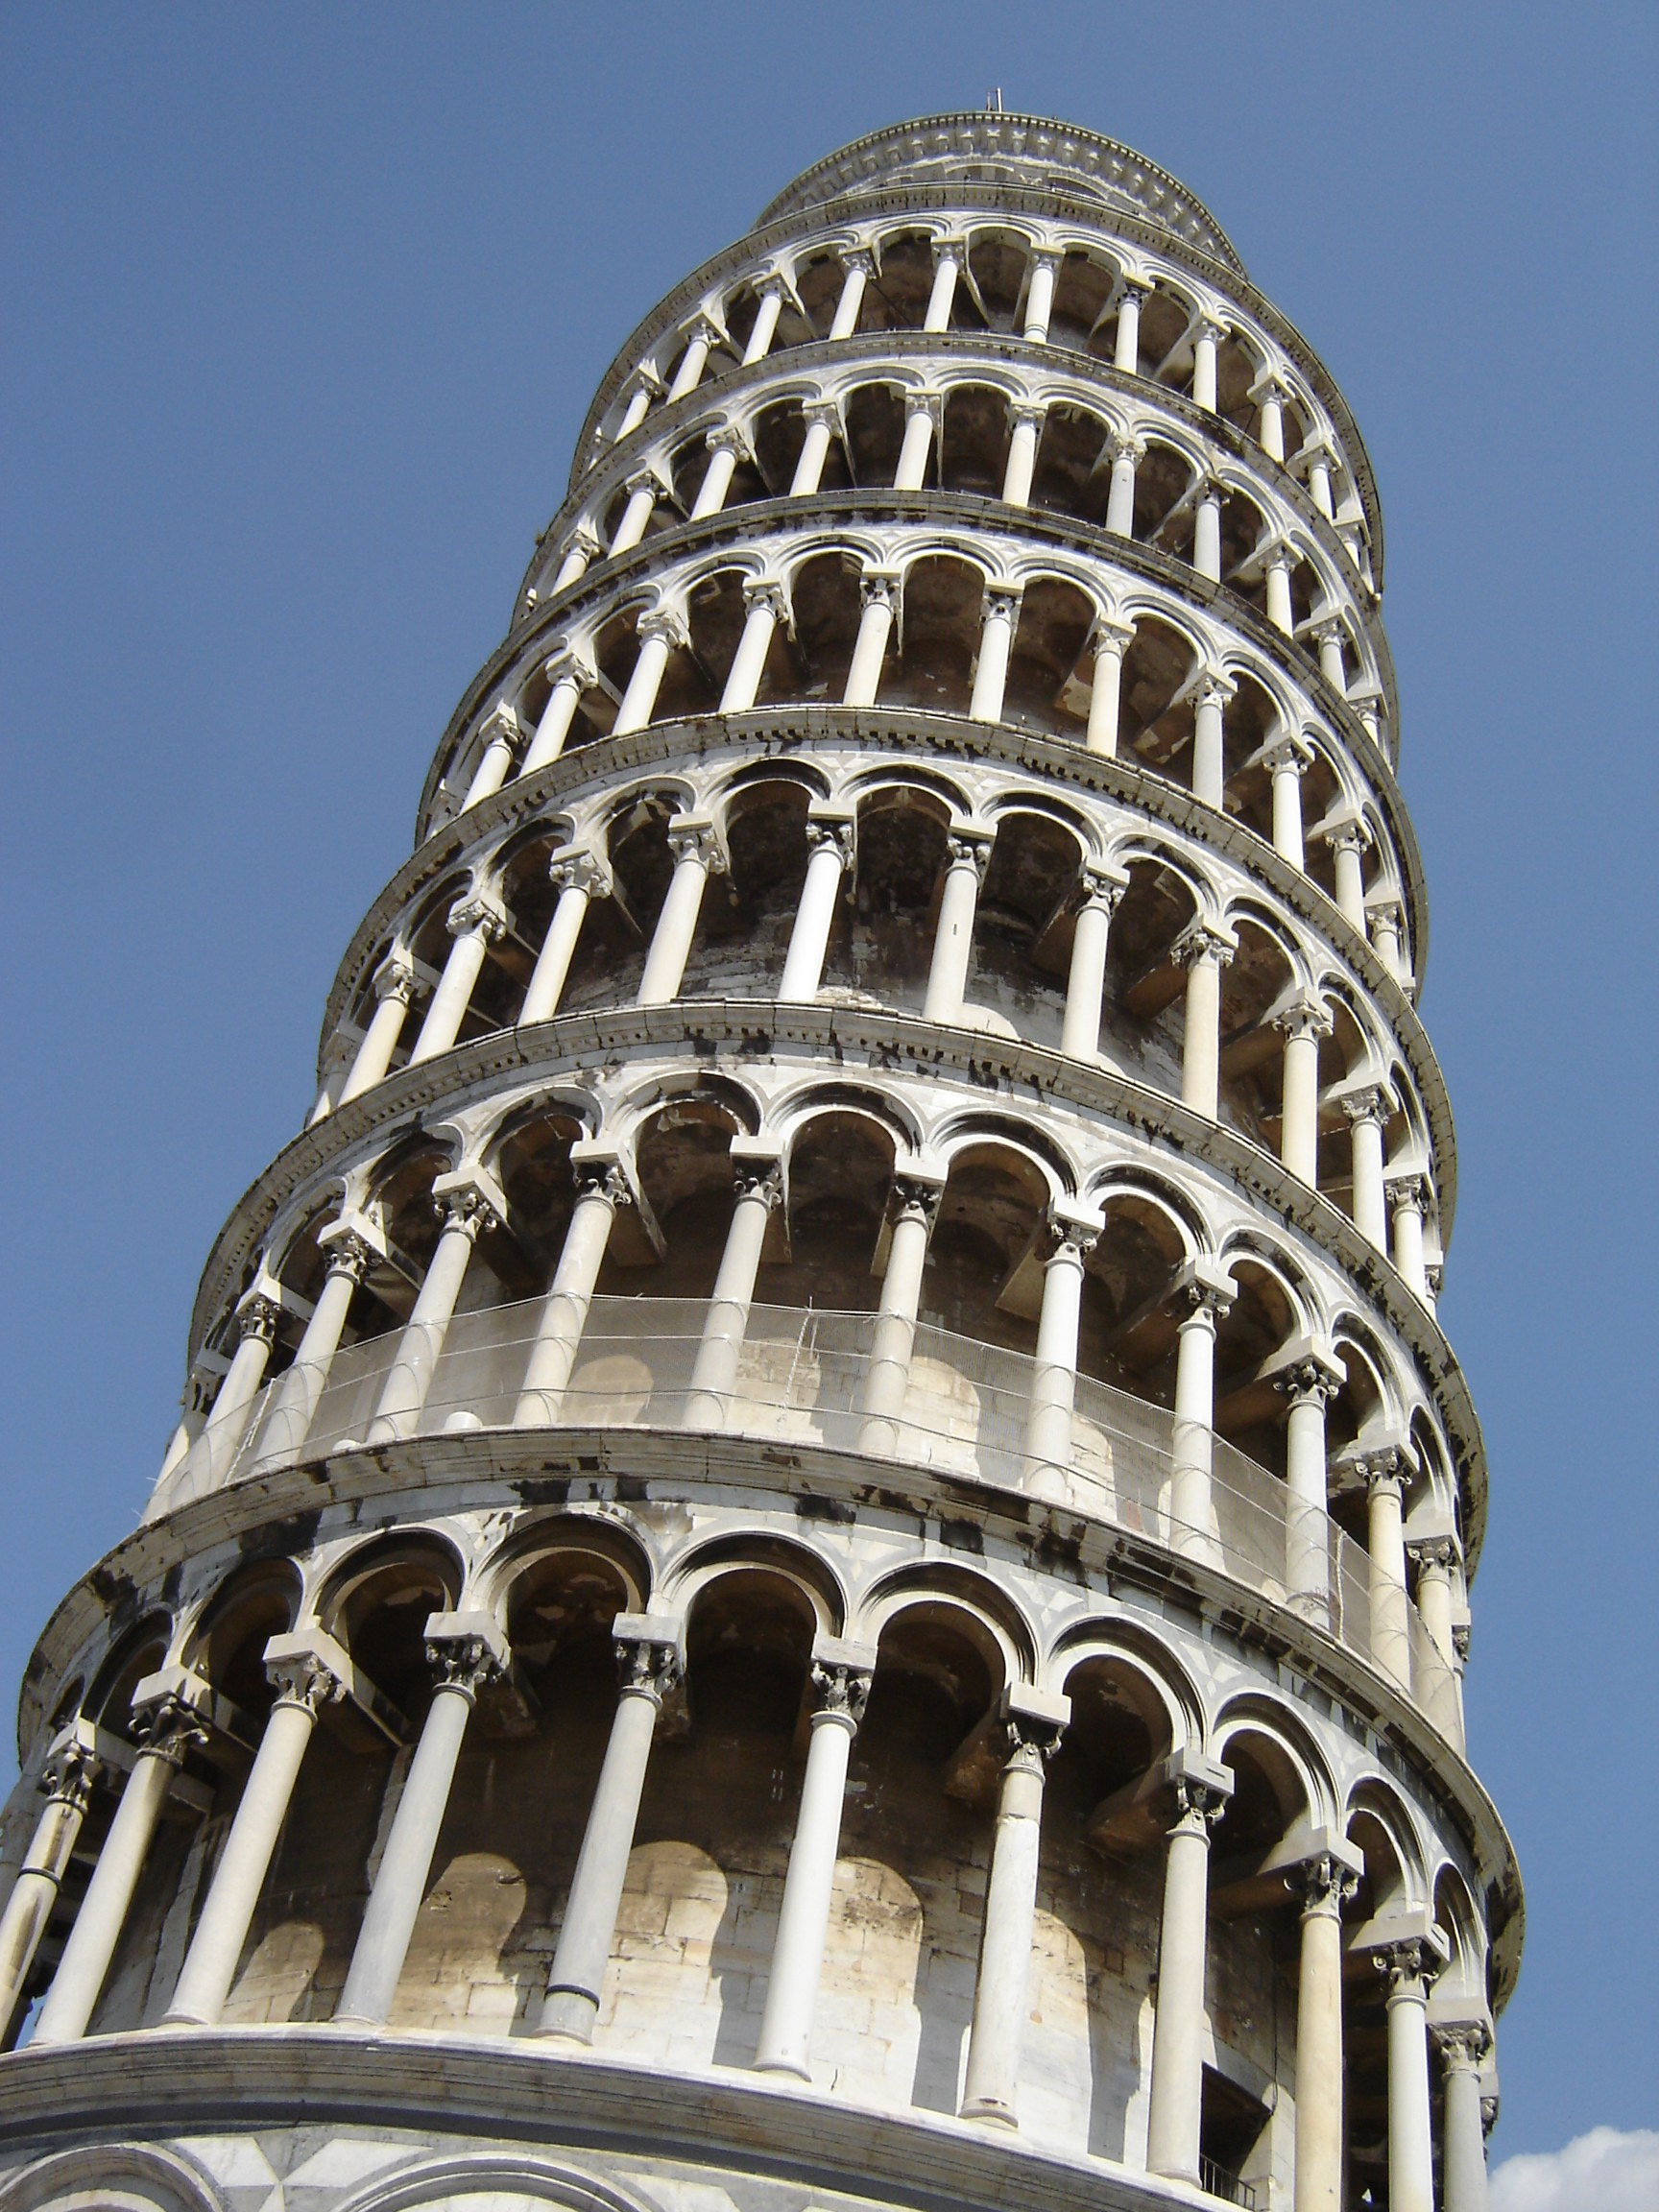 leaning tower of pisa Build the famous leaning tower of pisa with its ornate architecture and trademark tilt to bring this icon of world architecture to life.